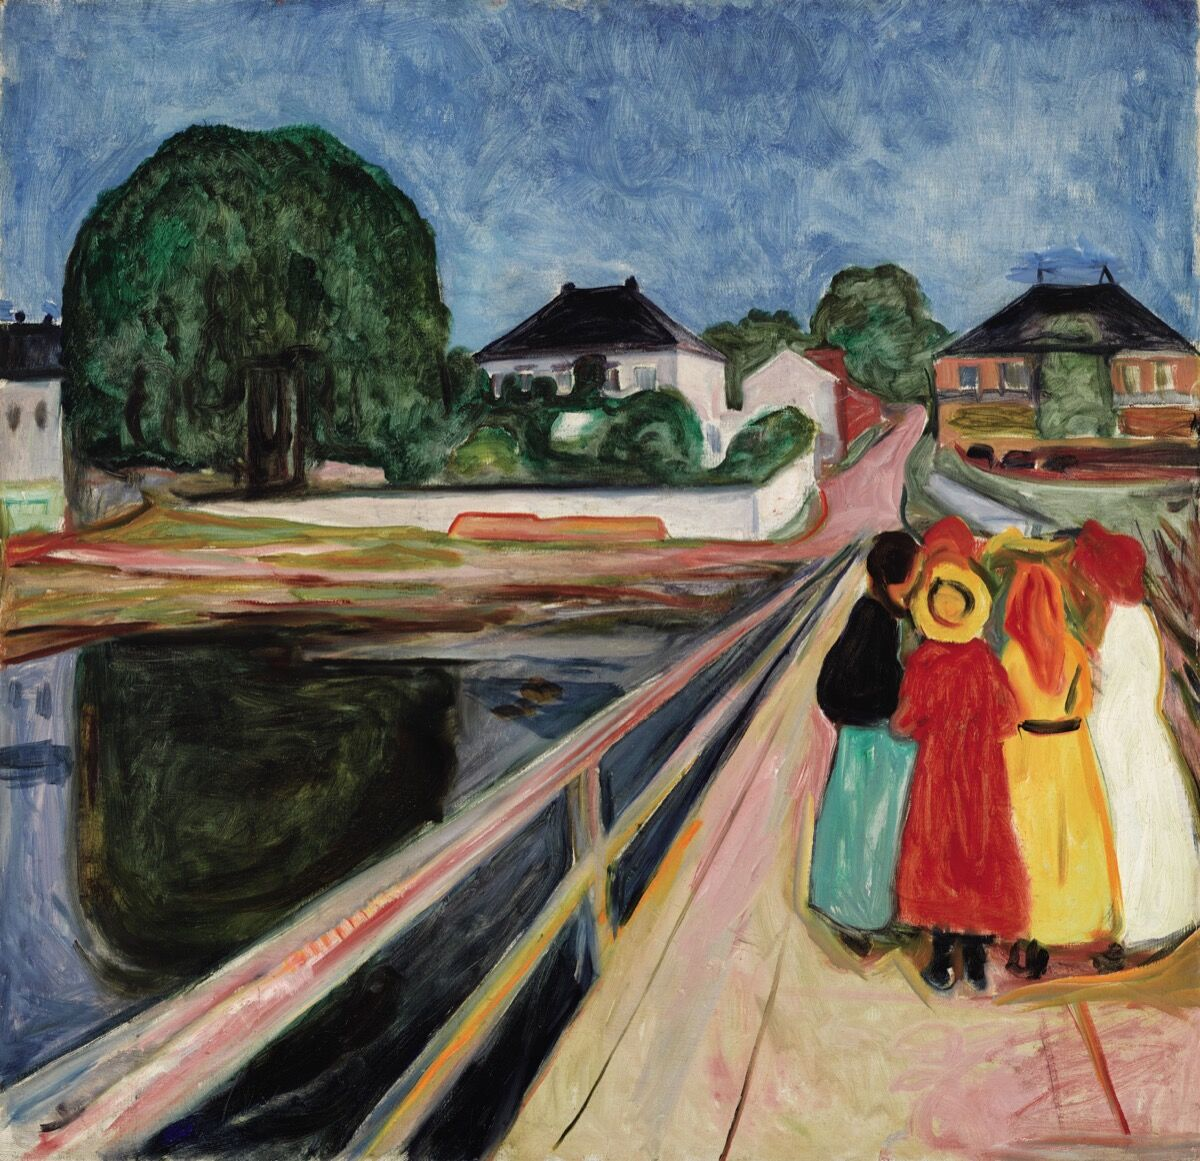 Edvard Munch, Pikene På Broen (Girls on the Bridge), 1902. Image courtesy of Sotheby's.